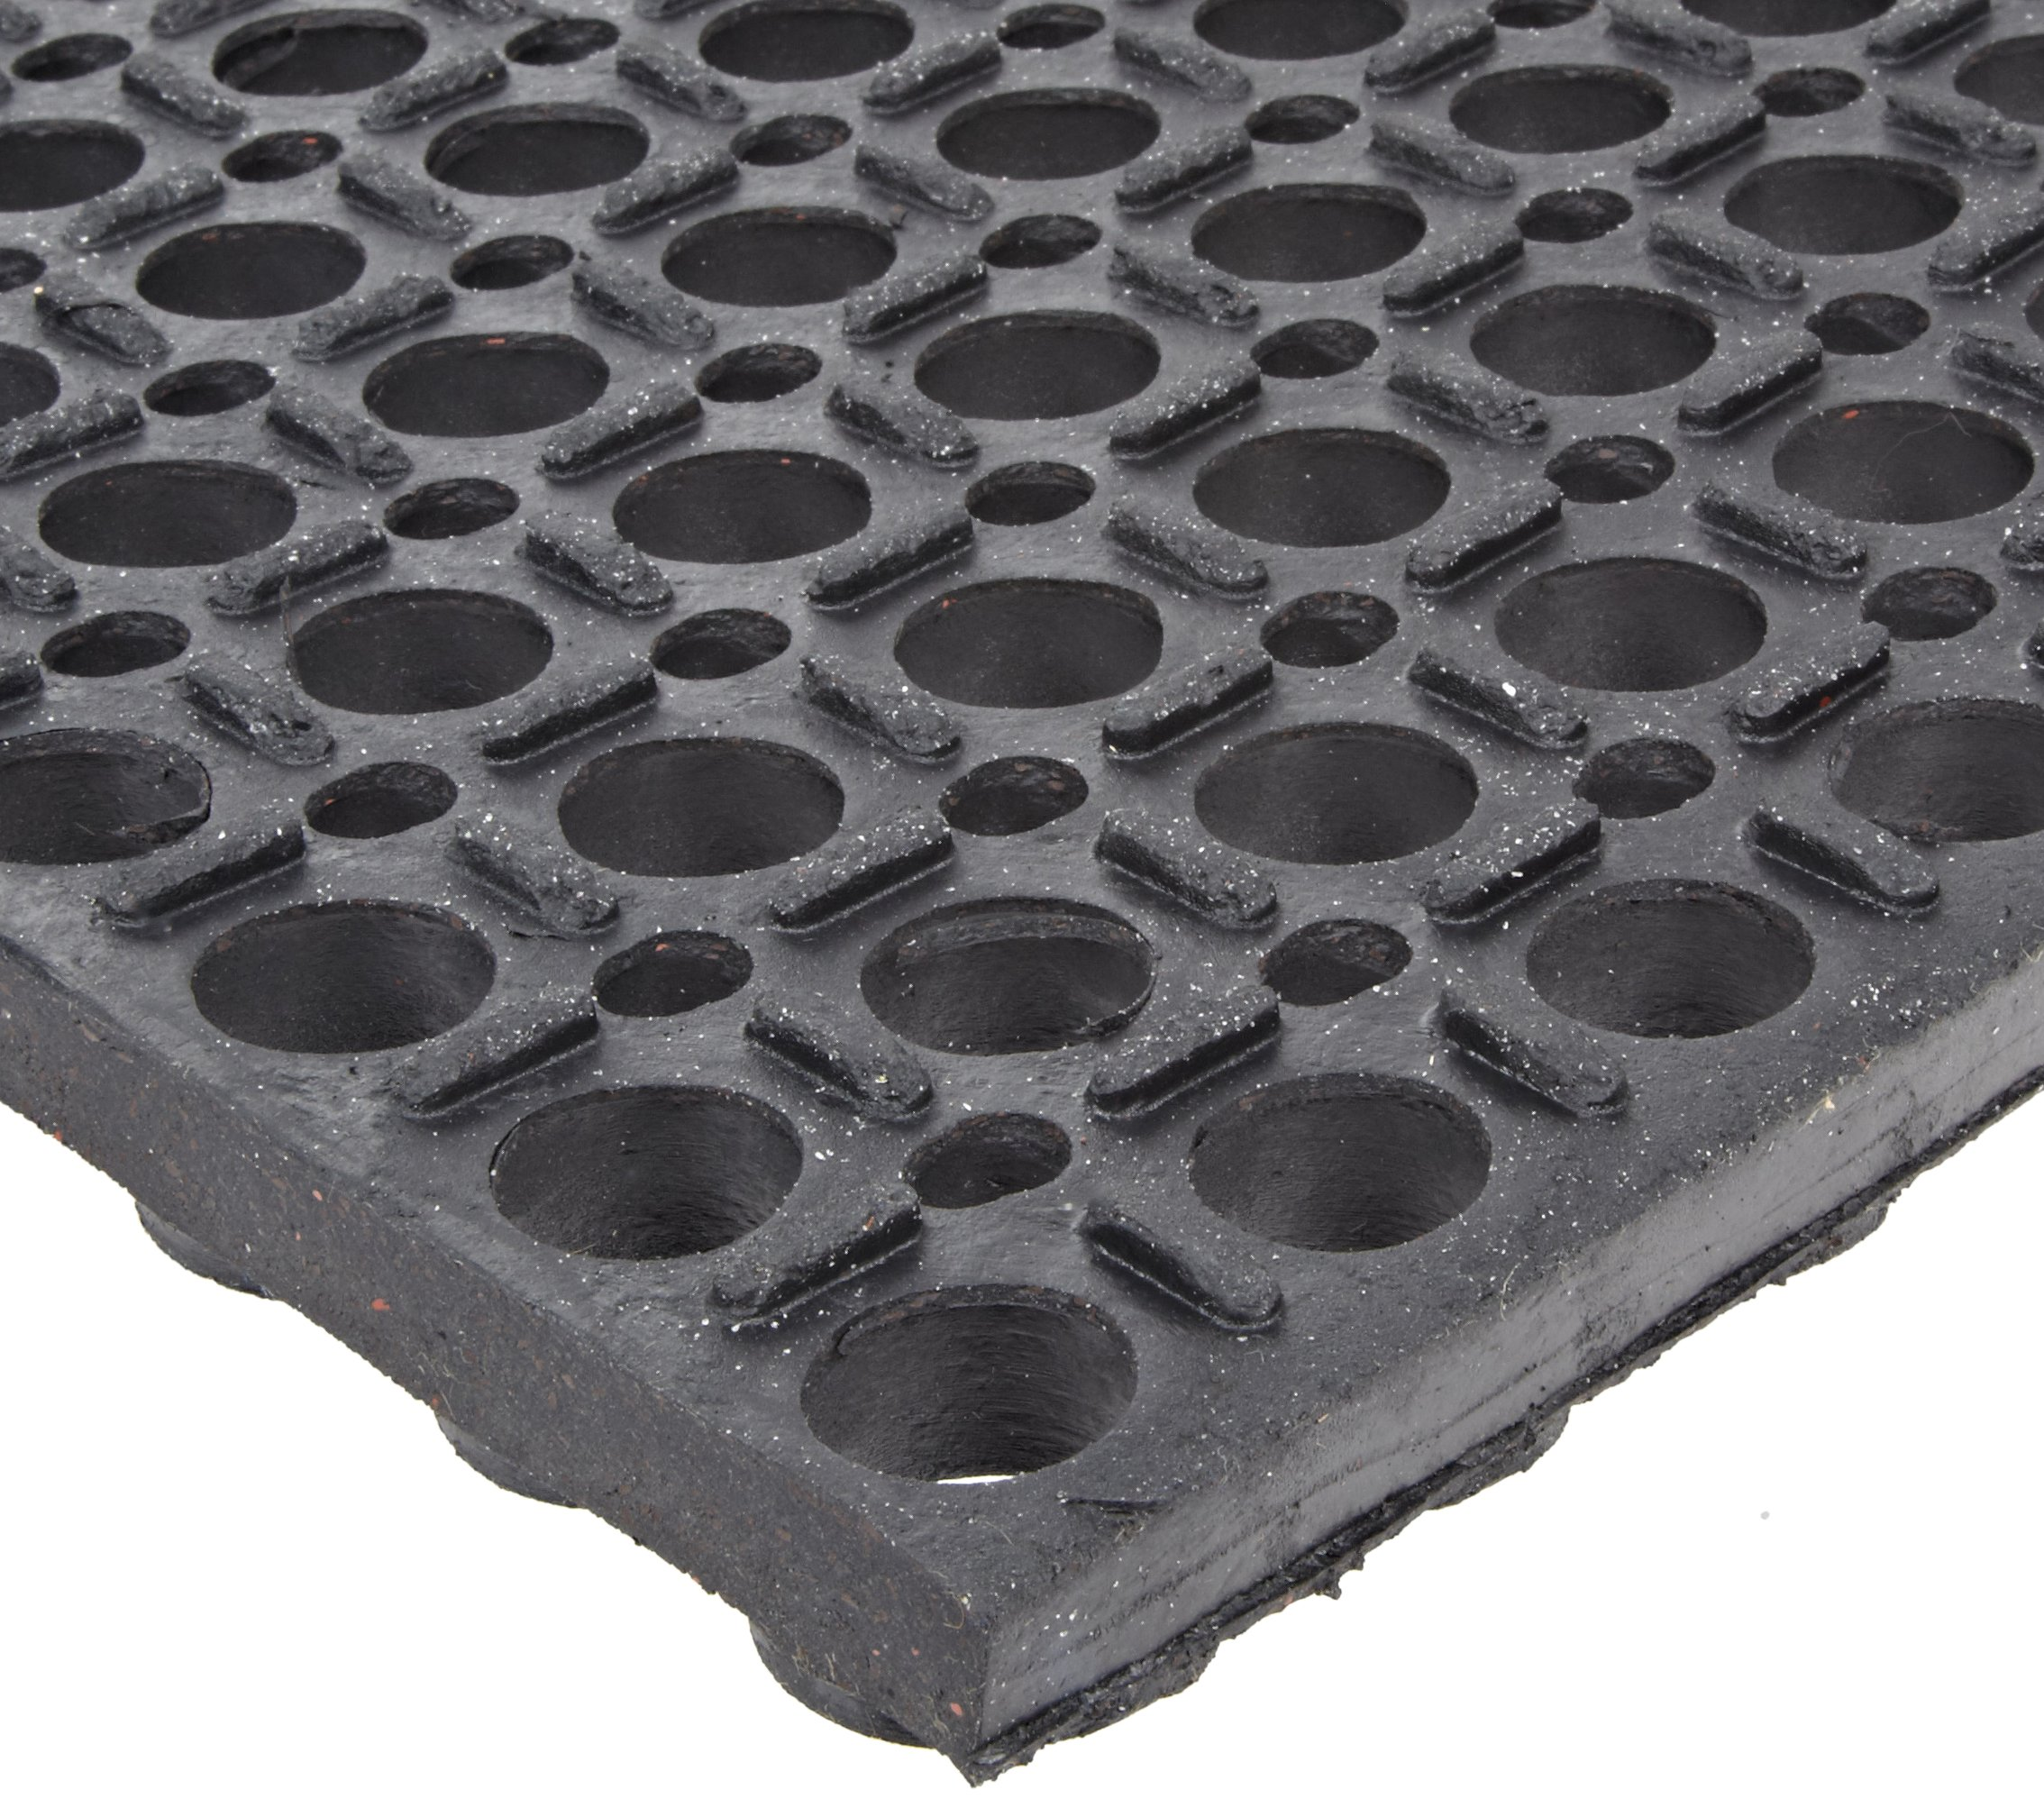 NoTrax T13 General Purpose Rubber Tek-Tough Safety/Anti-Fatigue Mat, for Wet or Greasy Areas, 3' Width x 2' Length x 7/8'' Thickness, Black by NoTrax Floor Matting (Image #2)